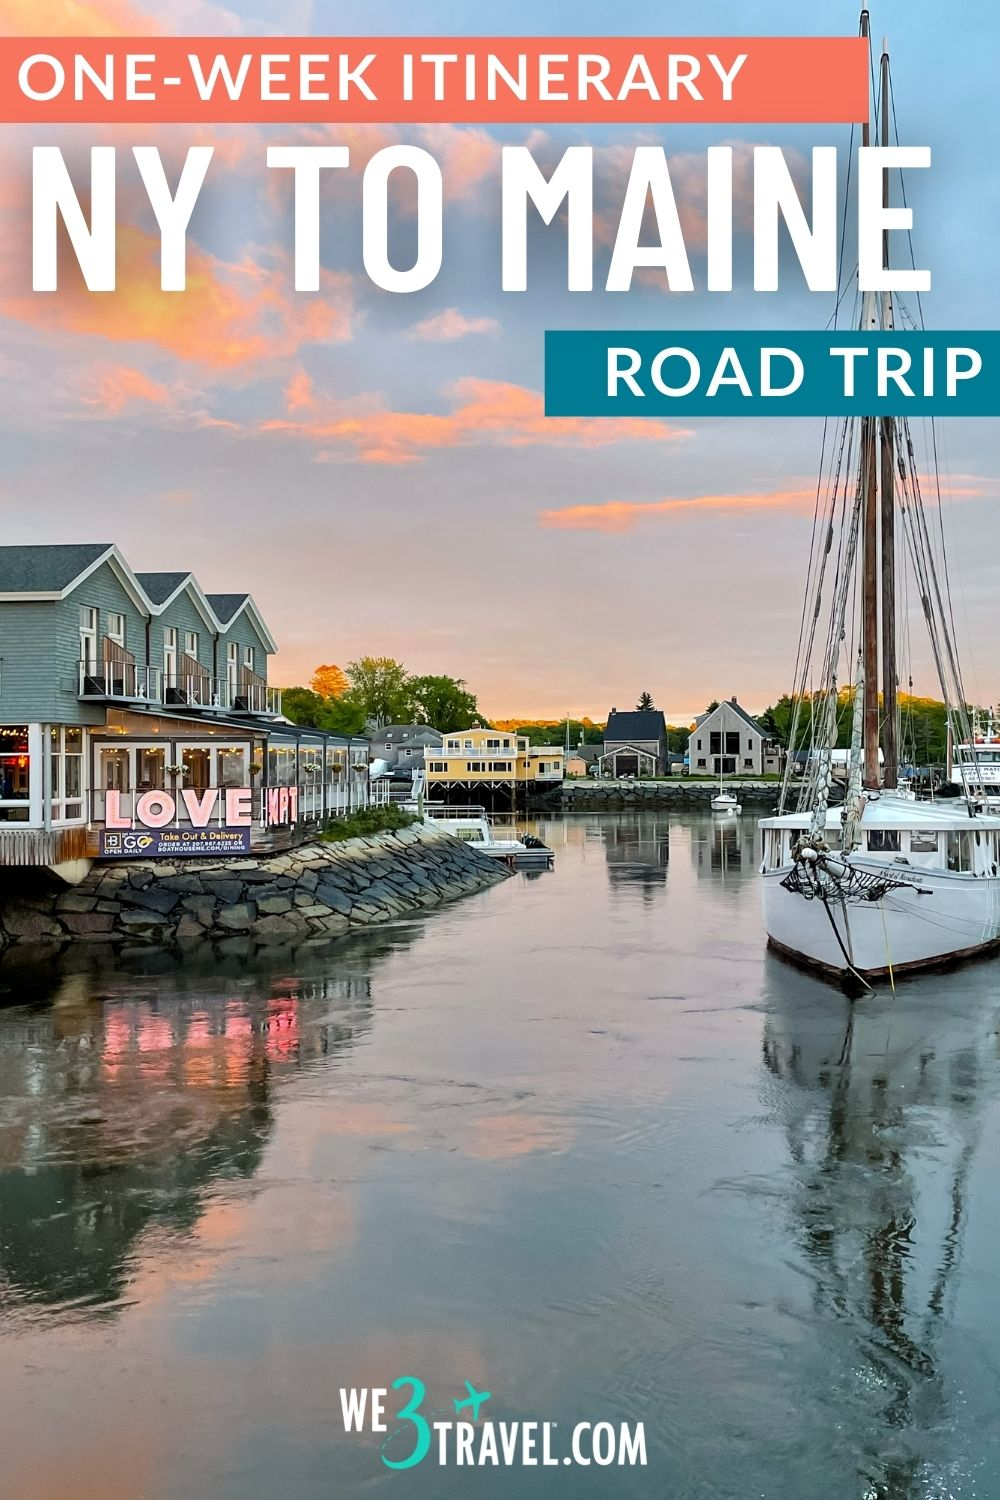 One week itinerary for a New York to Maine road trip